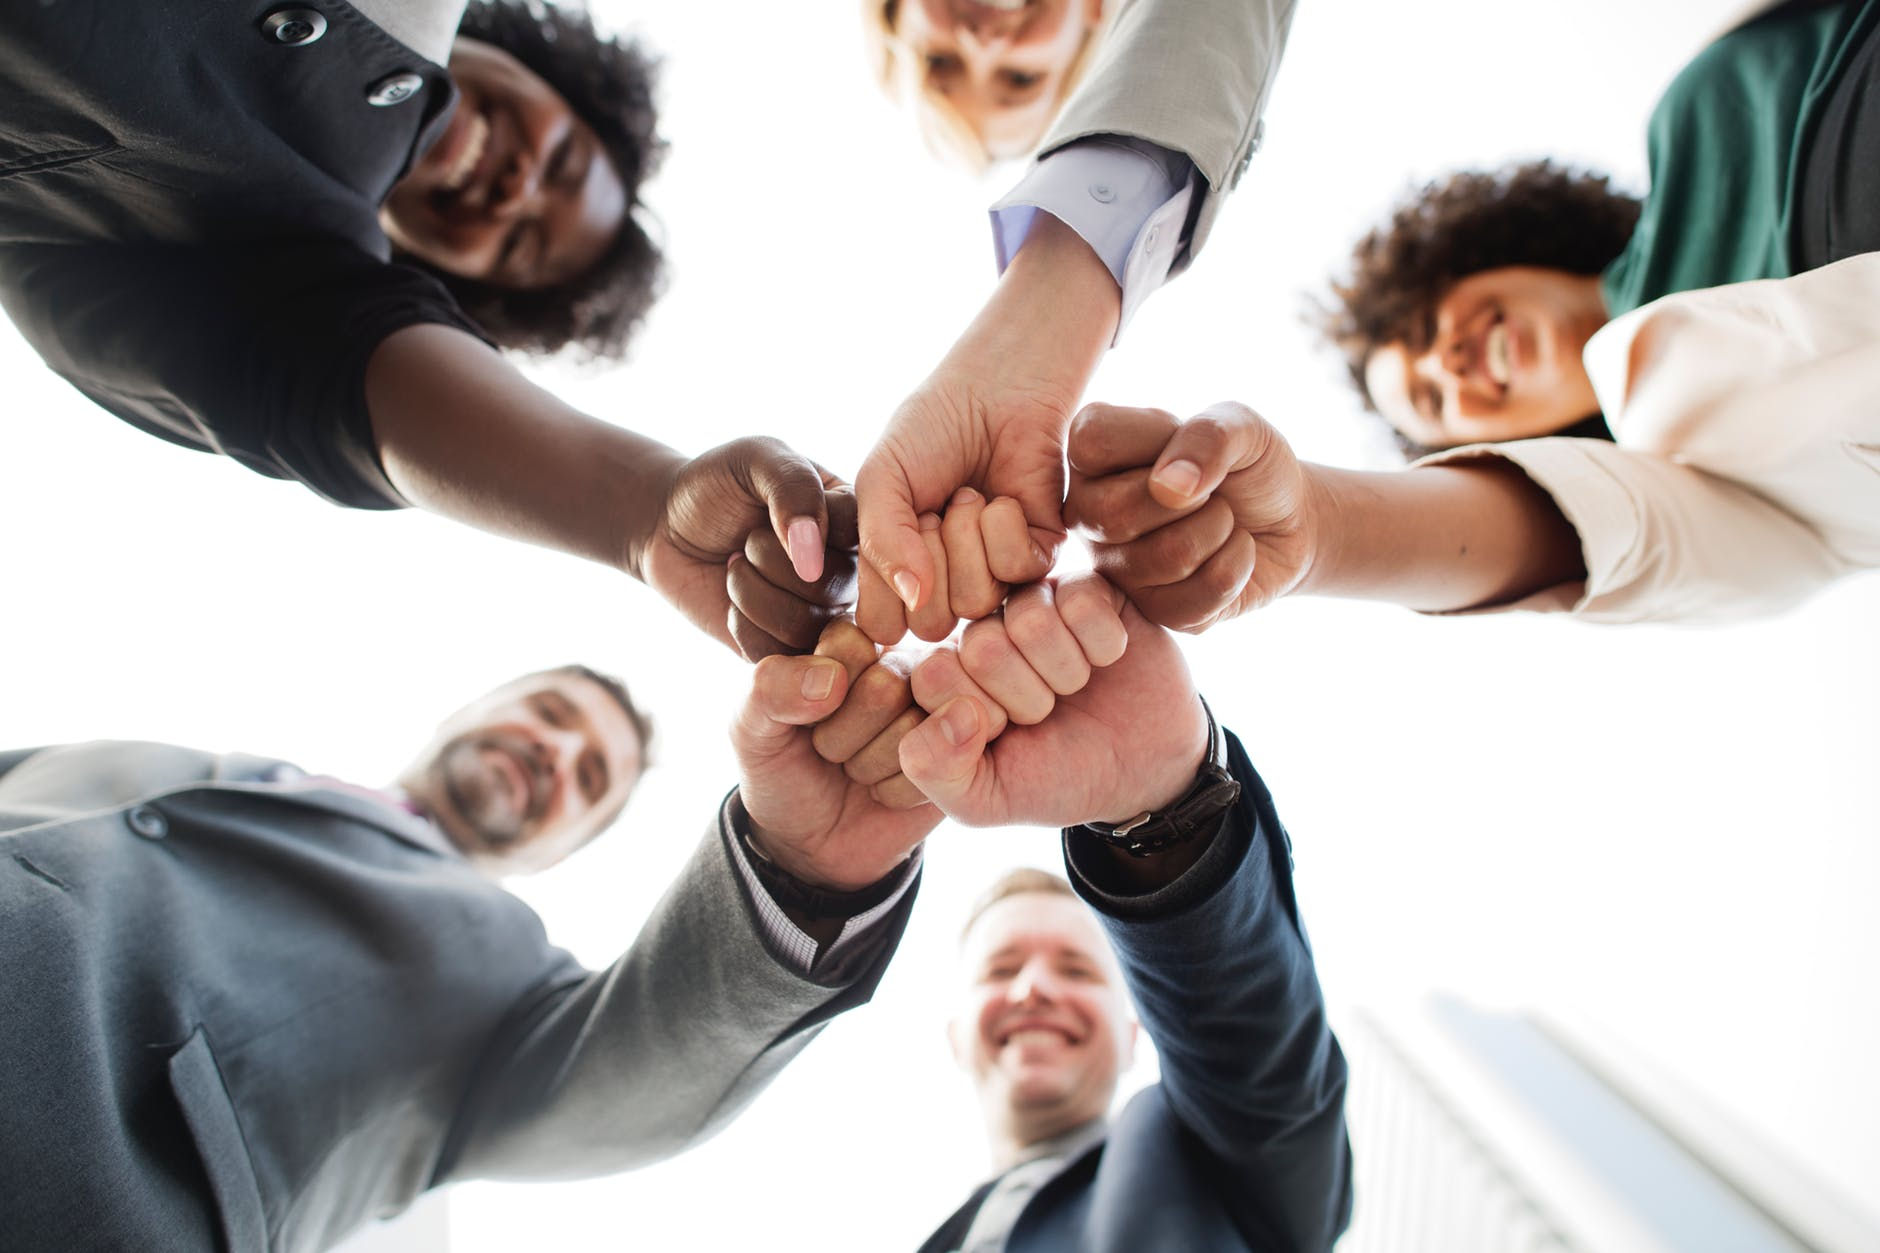 How to Have Team-Oriented Leadership